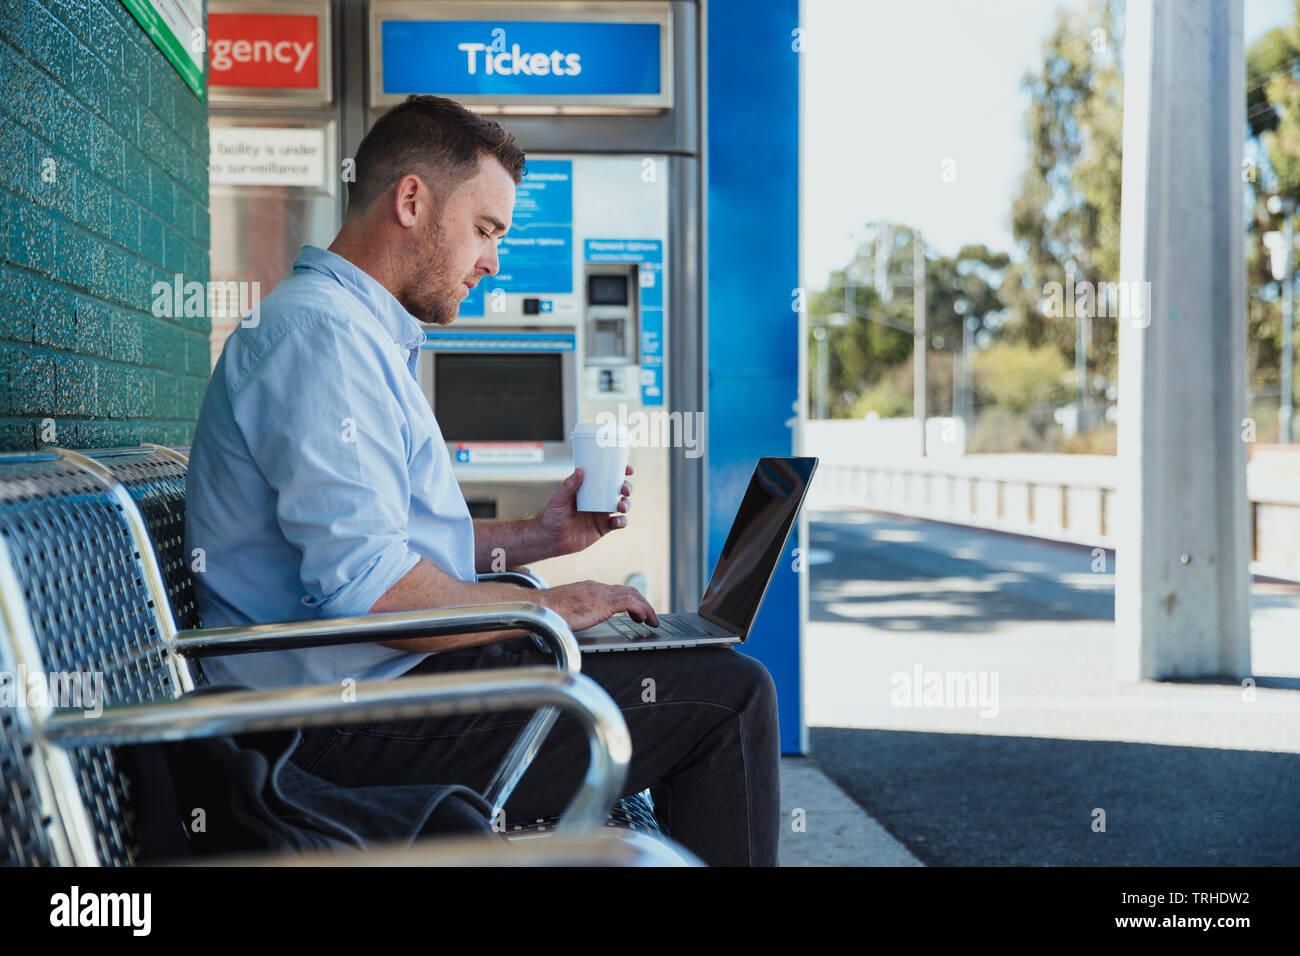 A side-view shot of a mid-adult caucasian businessman working on his laptop while he is sitting waiting for the train at a railroad station platform, - Stock Image